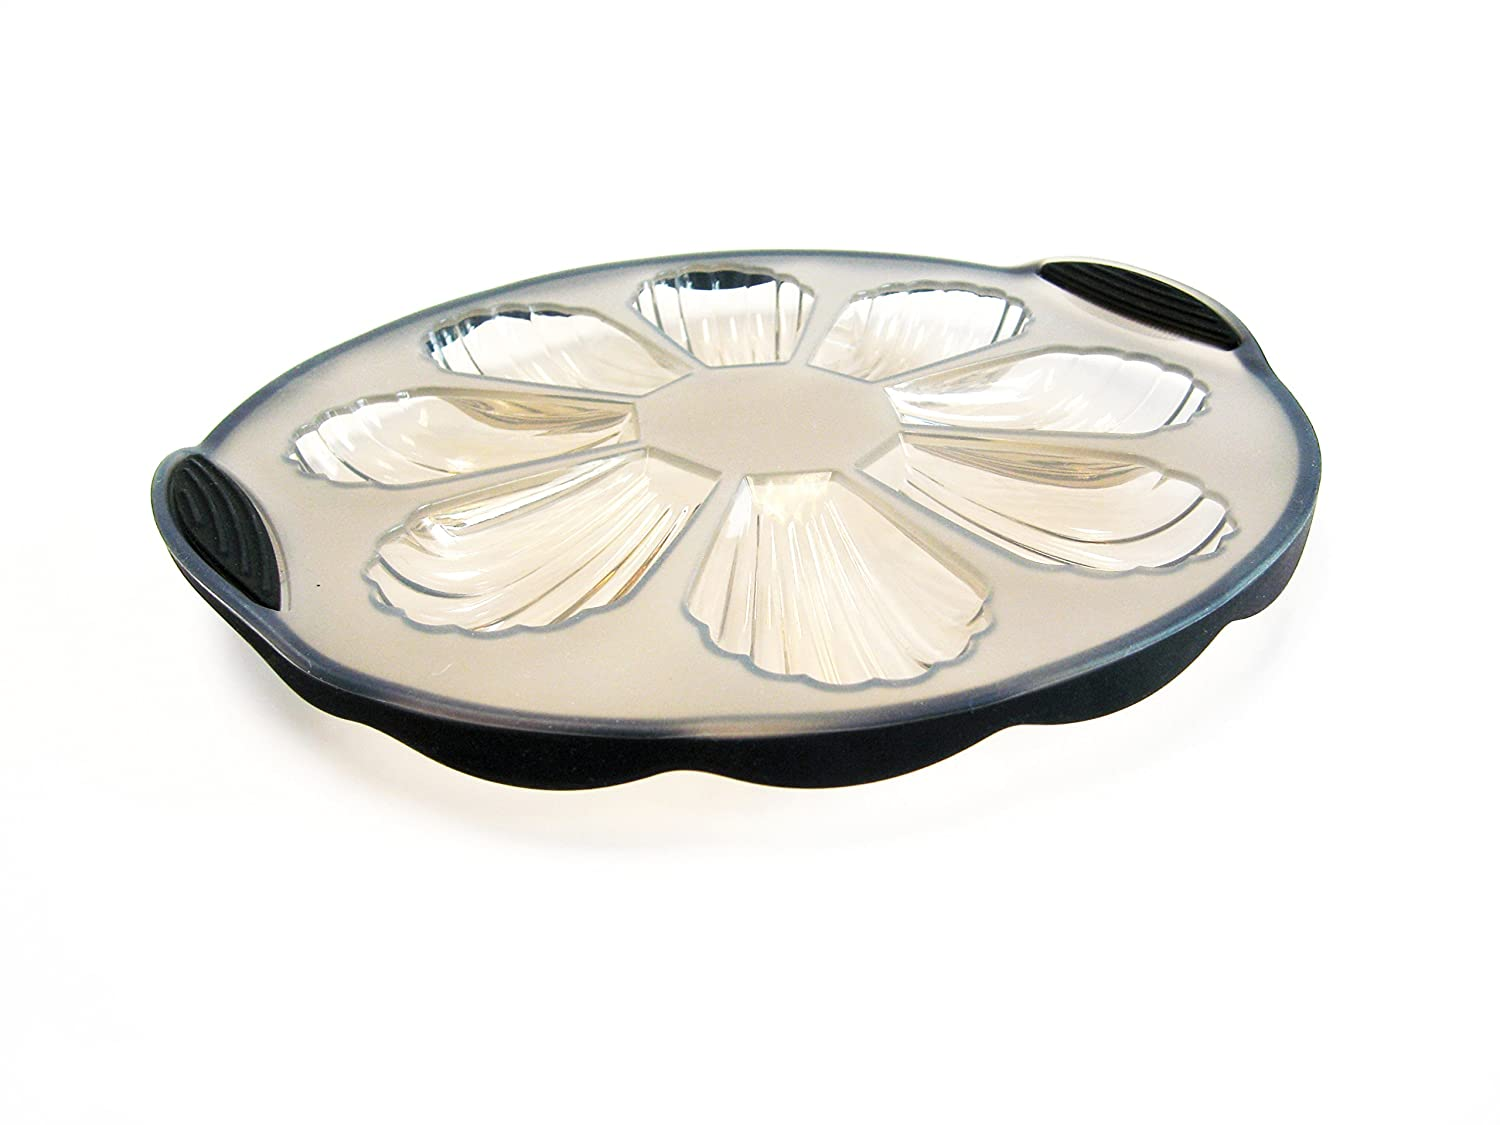 Oven BPA Free Freezer Microwave Clear /& Green SiliconeZone SZ05 CM 10128 AK Pure Collection 9 Silicone Non-Stick Round Cake Pan Dishwasher Safe